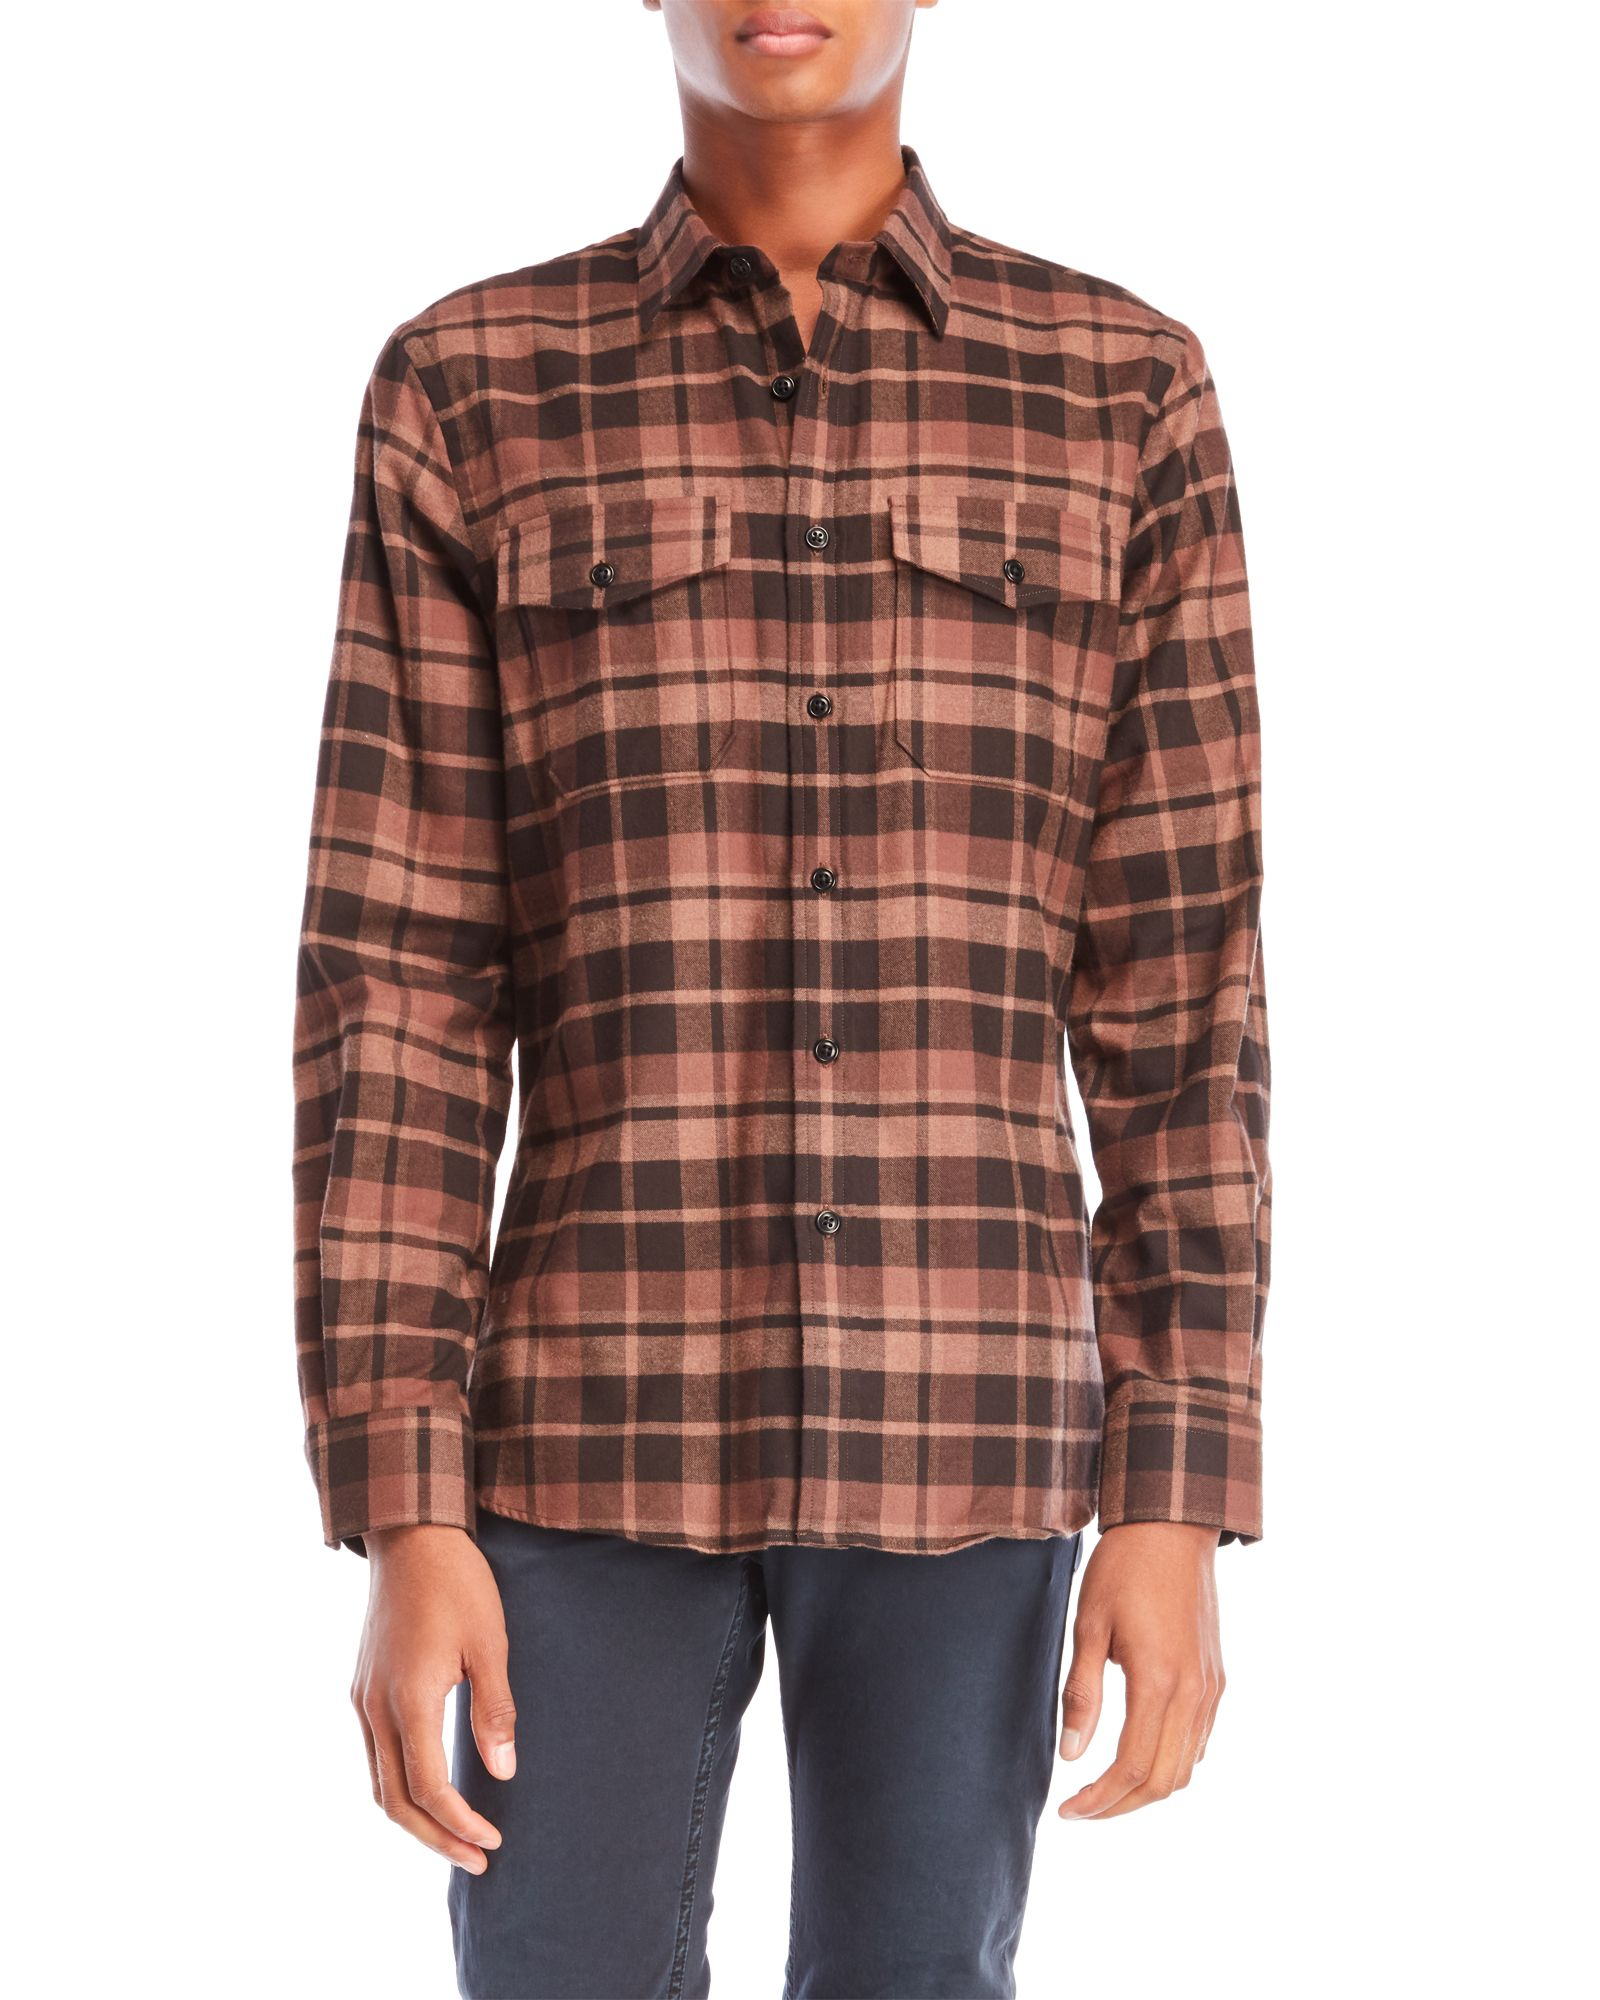 Todd Snyder Plaid Flannel